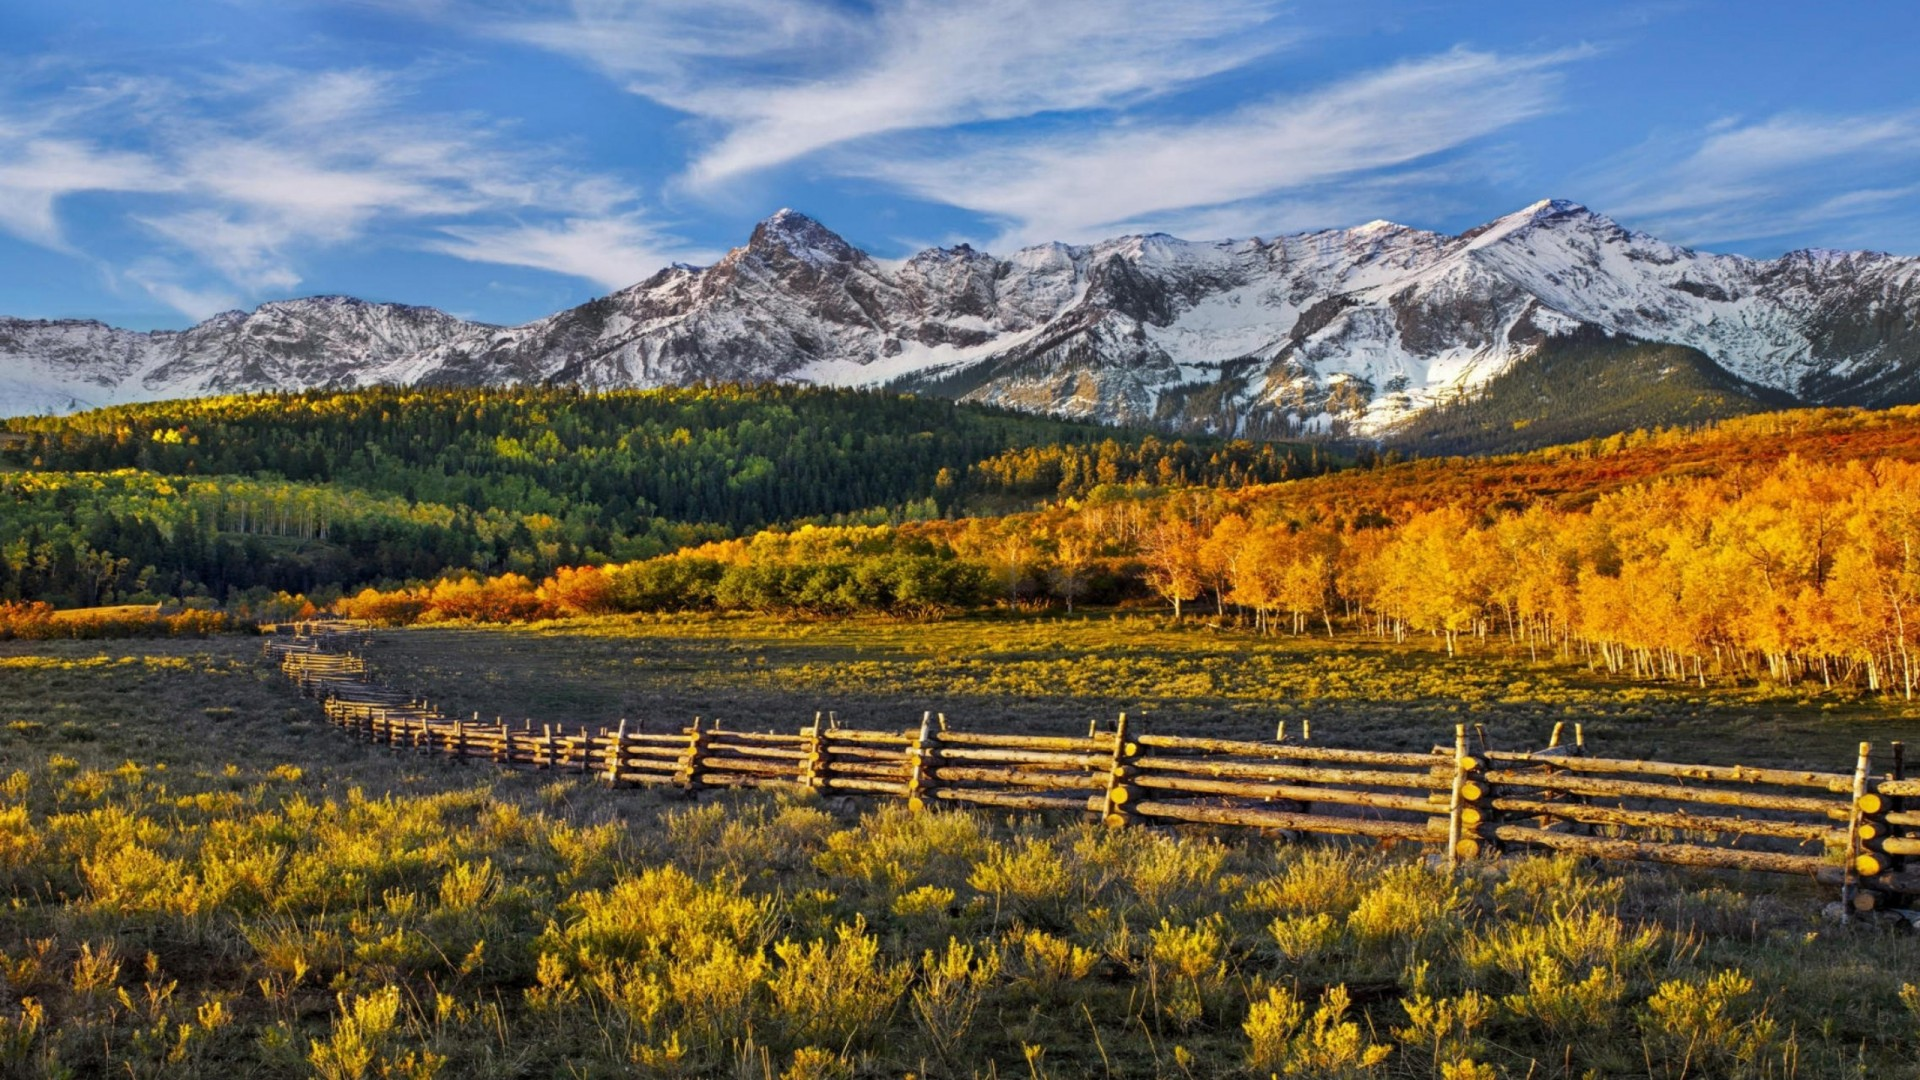 Beautiful, Hd Wallpaper Fall Mountains With Snow Forest With